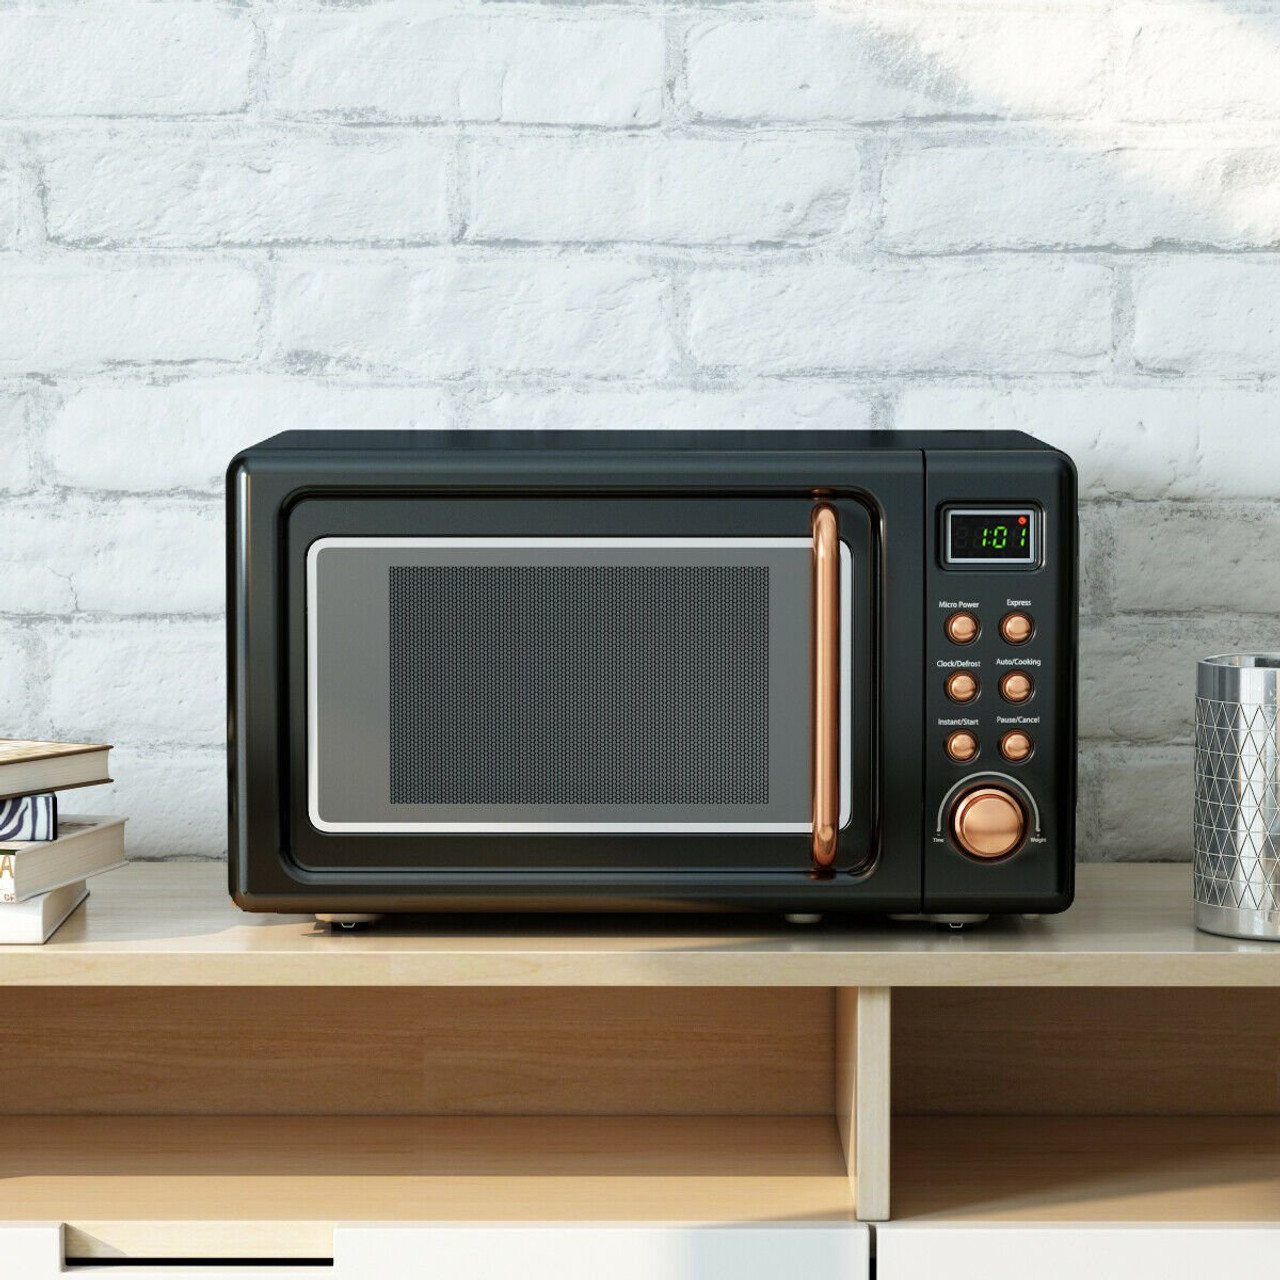 700w glass turntable retro countertop microwave oven golden ep23853gd